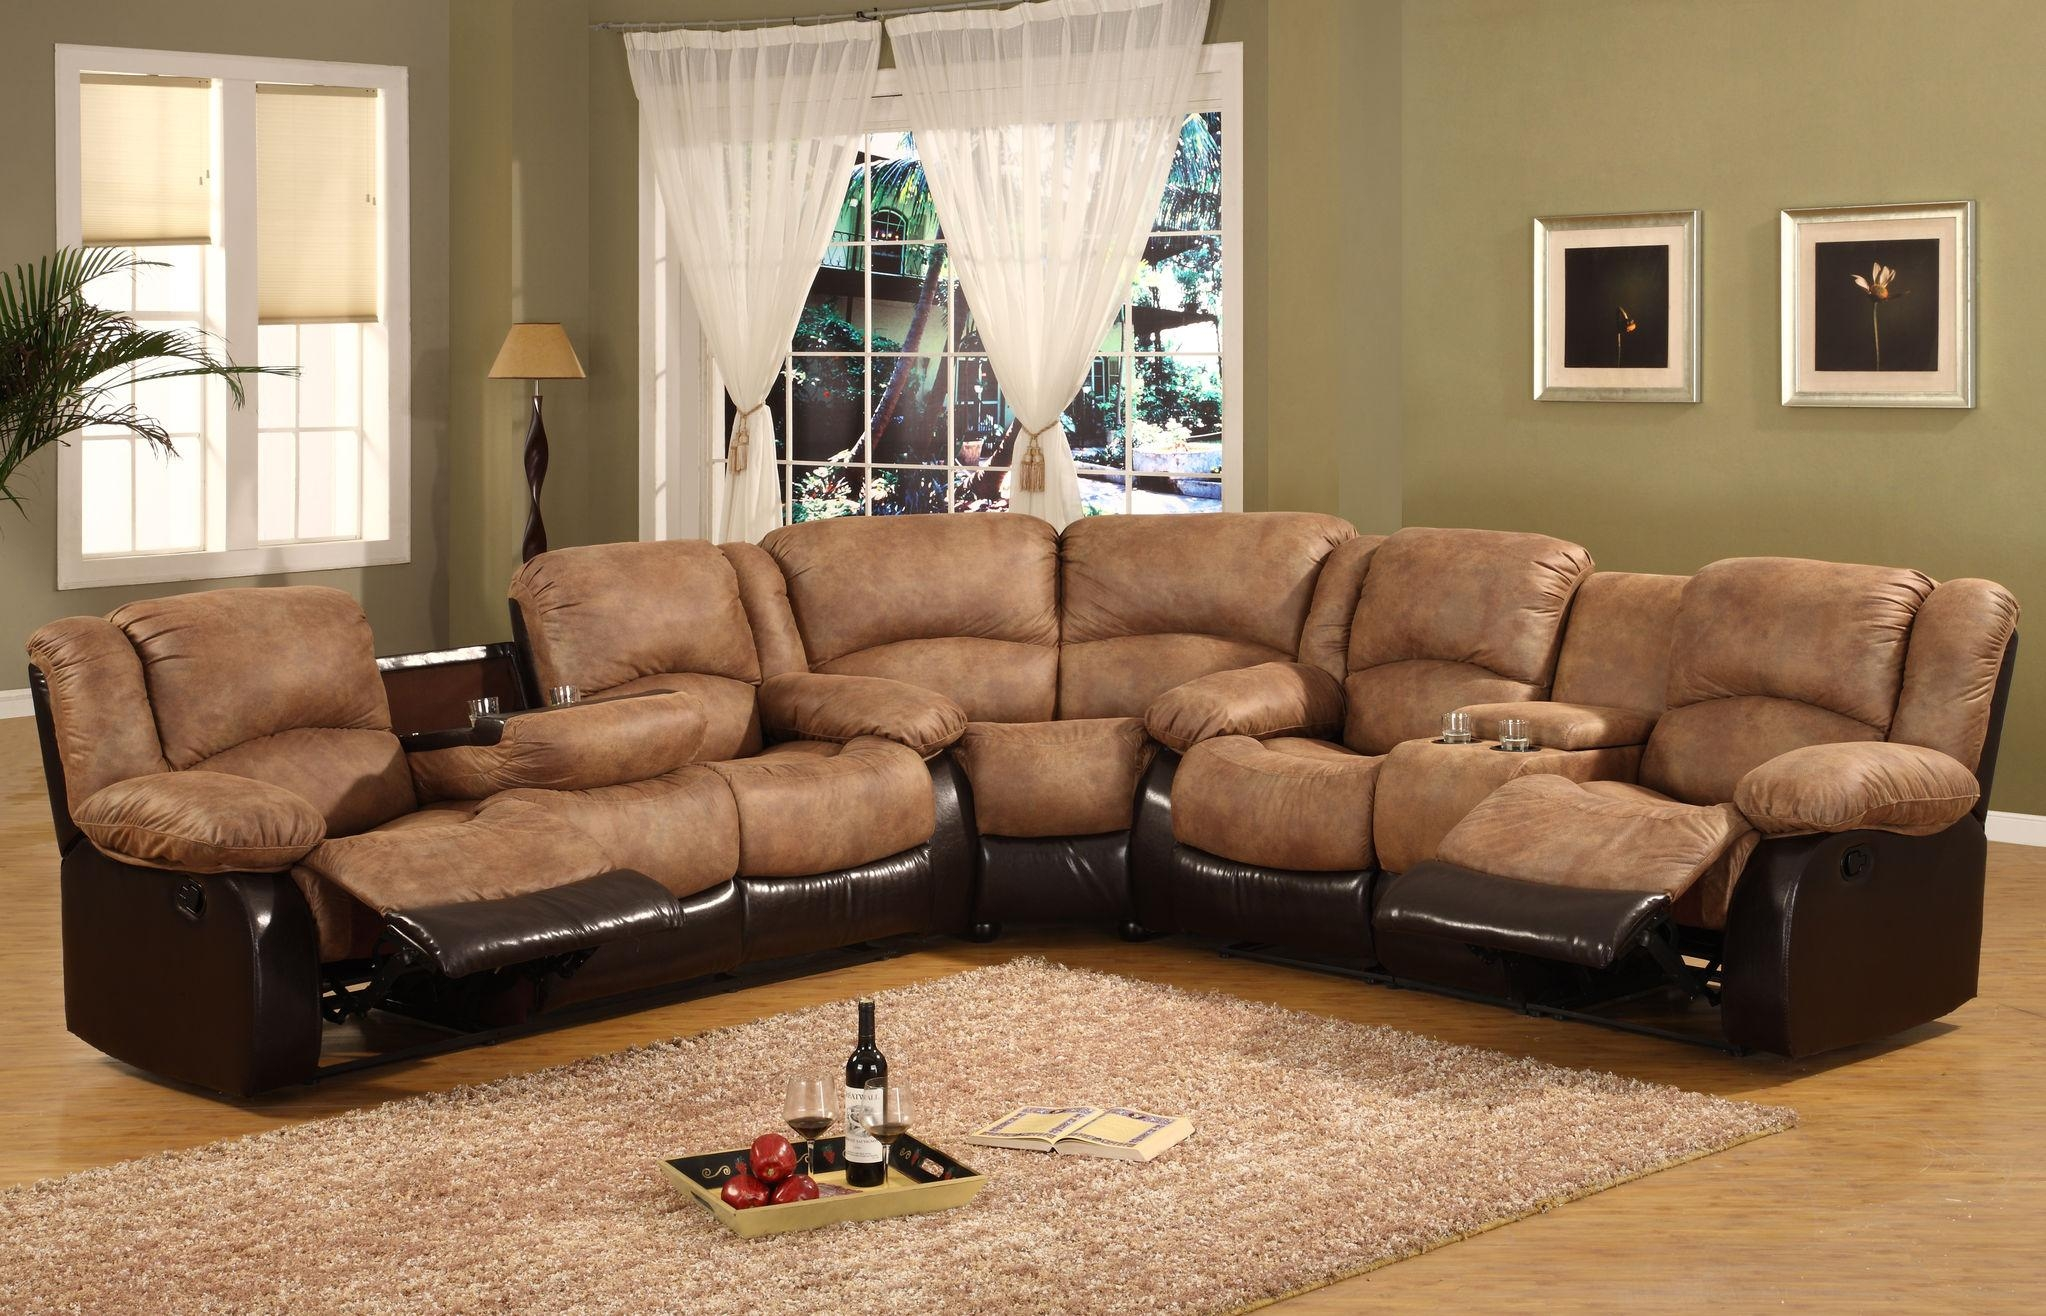 Fabric Sectional Sofas Sale – S3Net – Sectional Sofas Sale : S3Net Within Sectinal Sofas (Image 5 of 20)